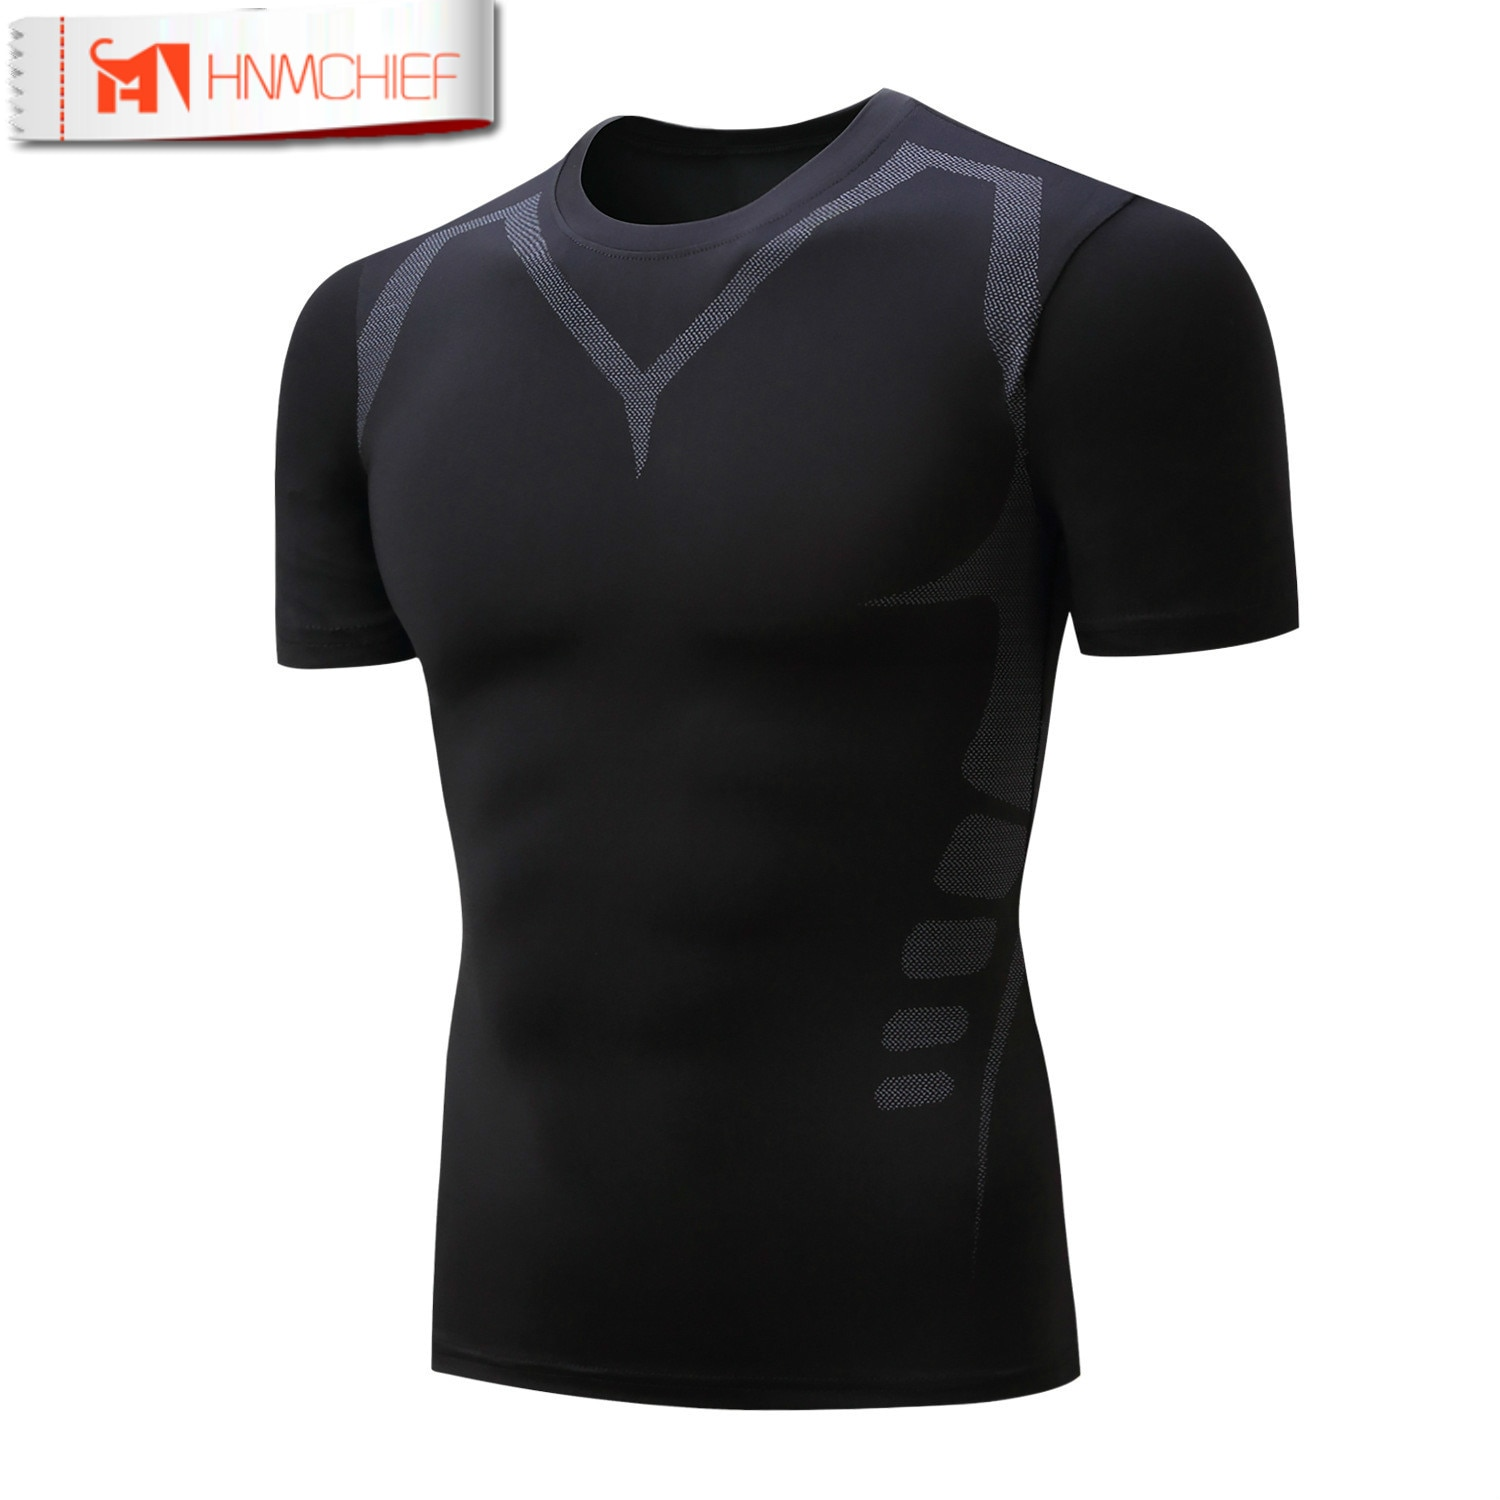 HNMCHIEF Hot Sale Fitness  Compression Shirt Men Bodybuilding short Sleeve T Shirt Tops Tees Sleeve 3D Male tshirt Fitness Compr